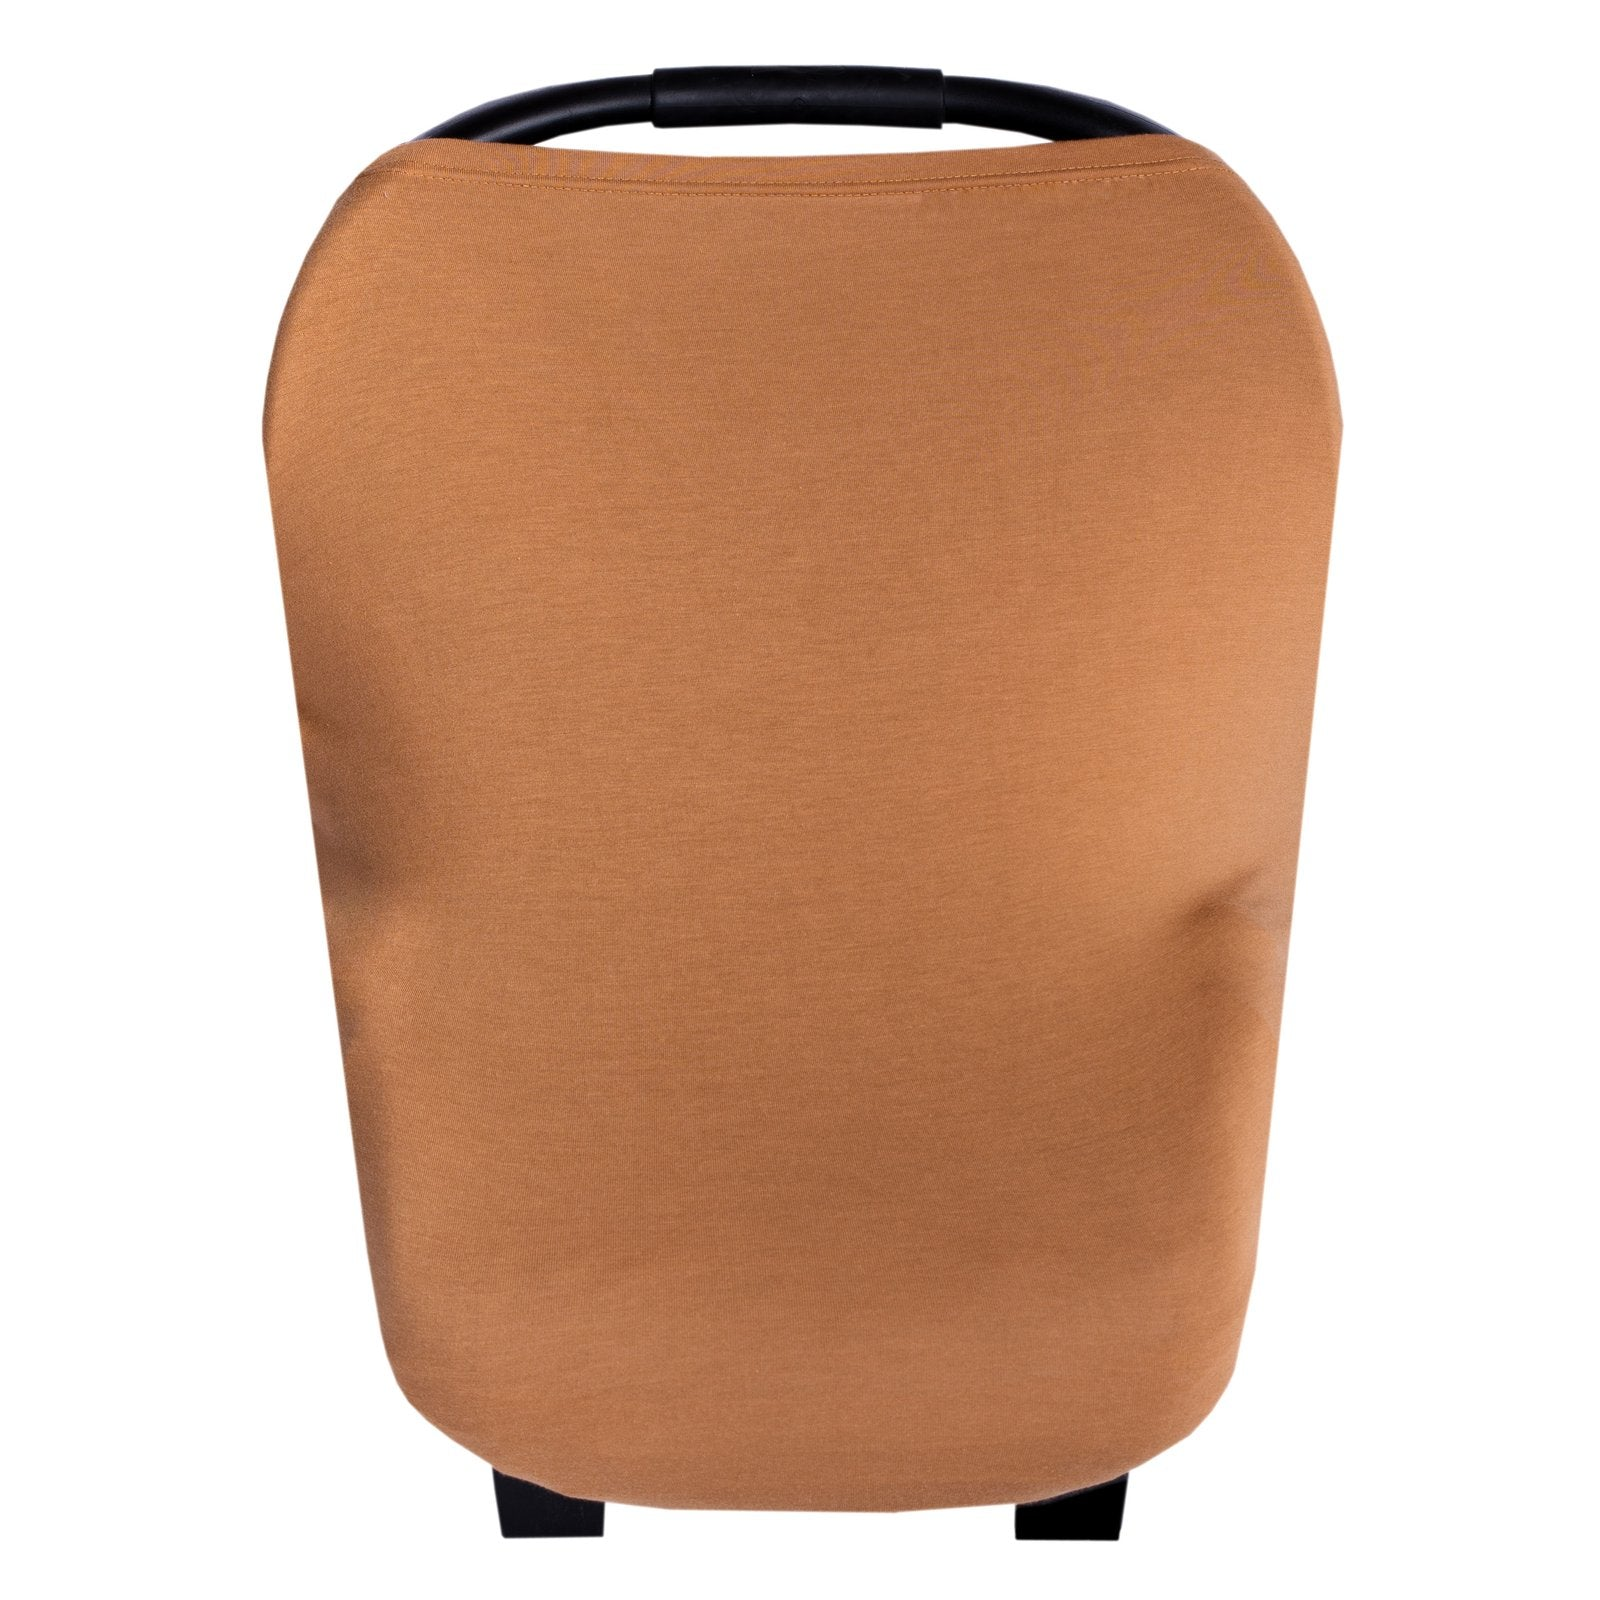 Copper Pearl 5-in-1 multi-use covers